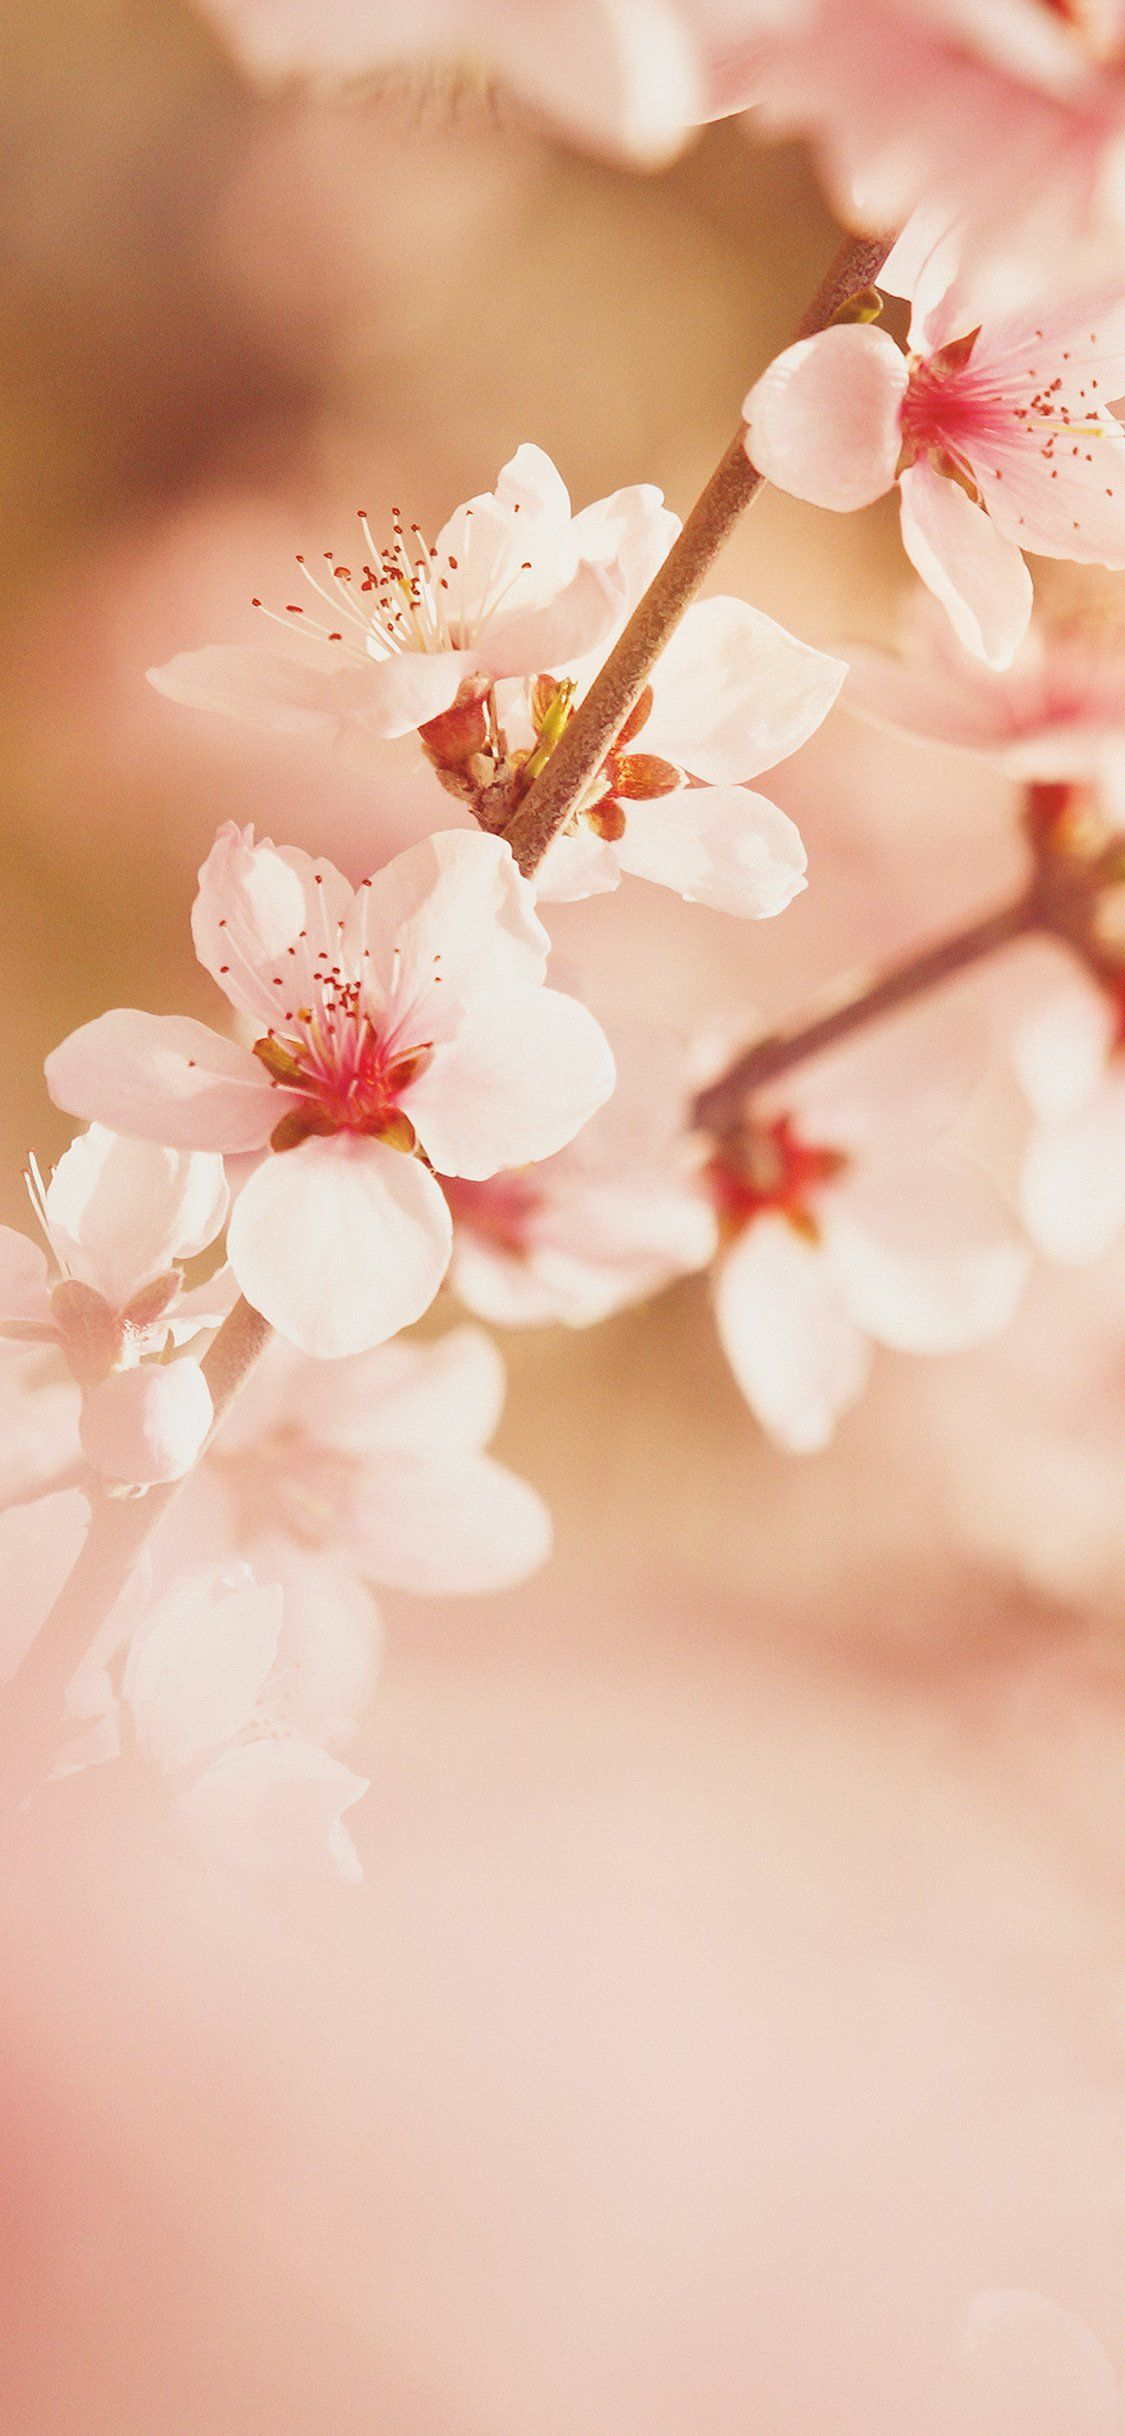 Cherry Blossom Iphone Wallpapers Top Free Cherry Blossom Iphone Backgrounds Wallpaperaccess